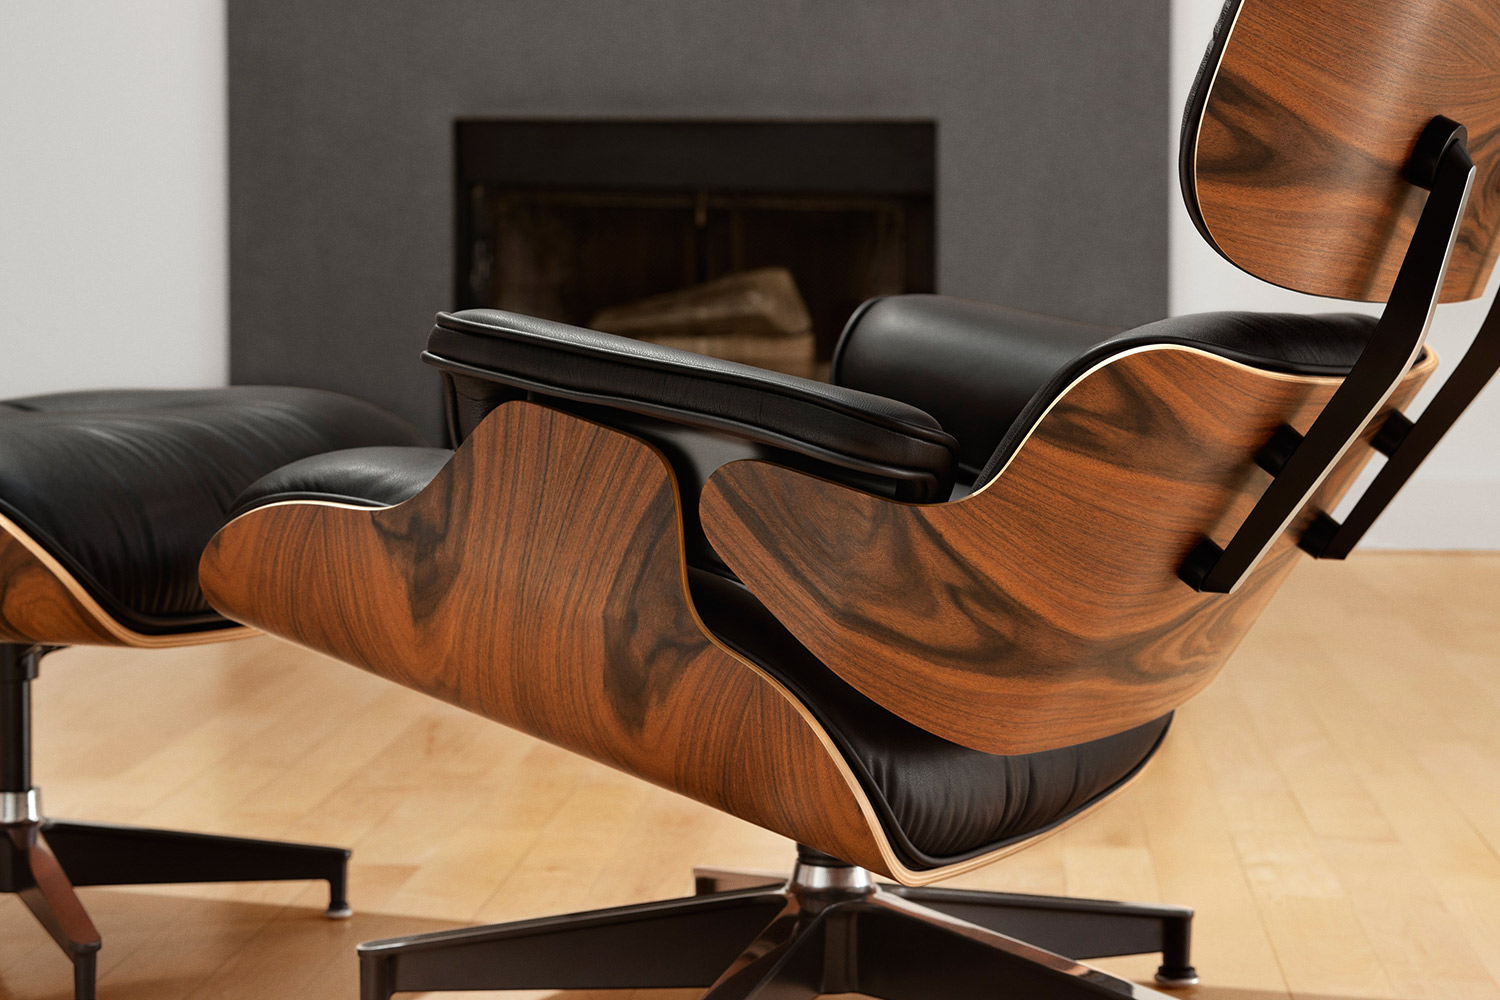 De Eames Stoel : How to tell if your eames lounge chair is real vs fake u my eames